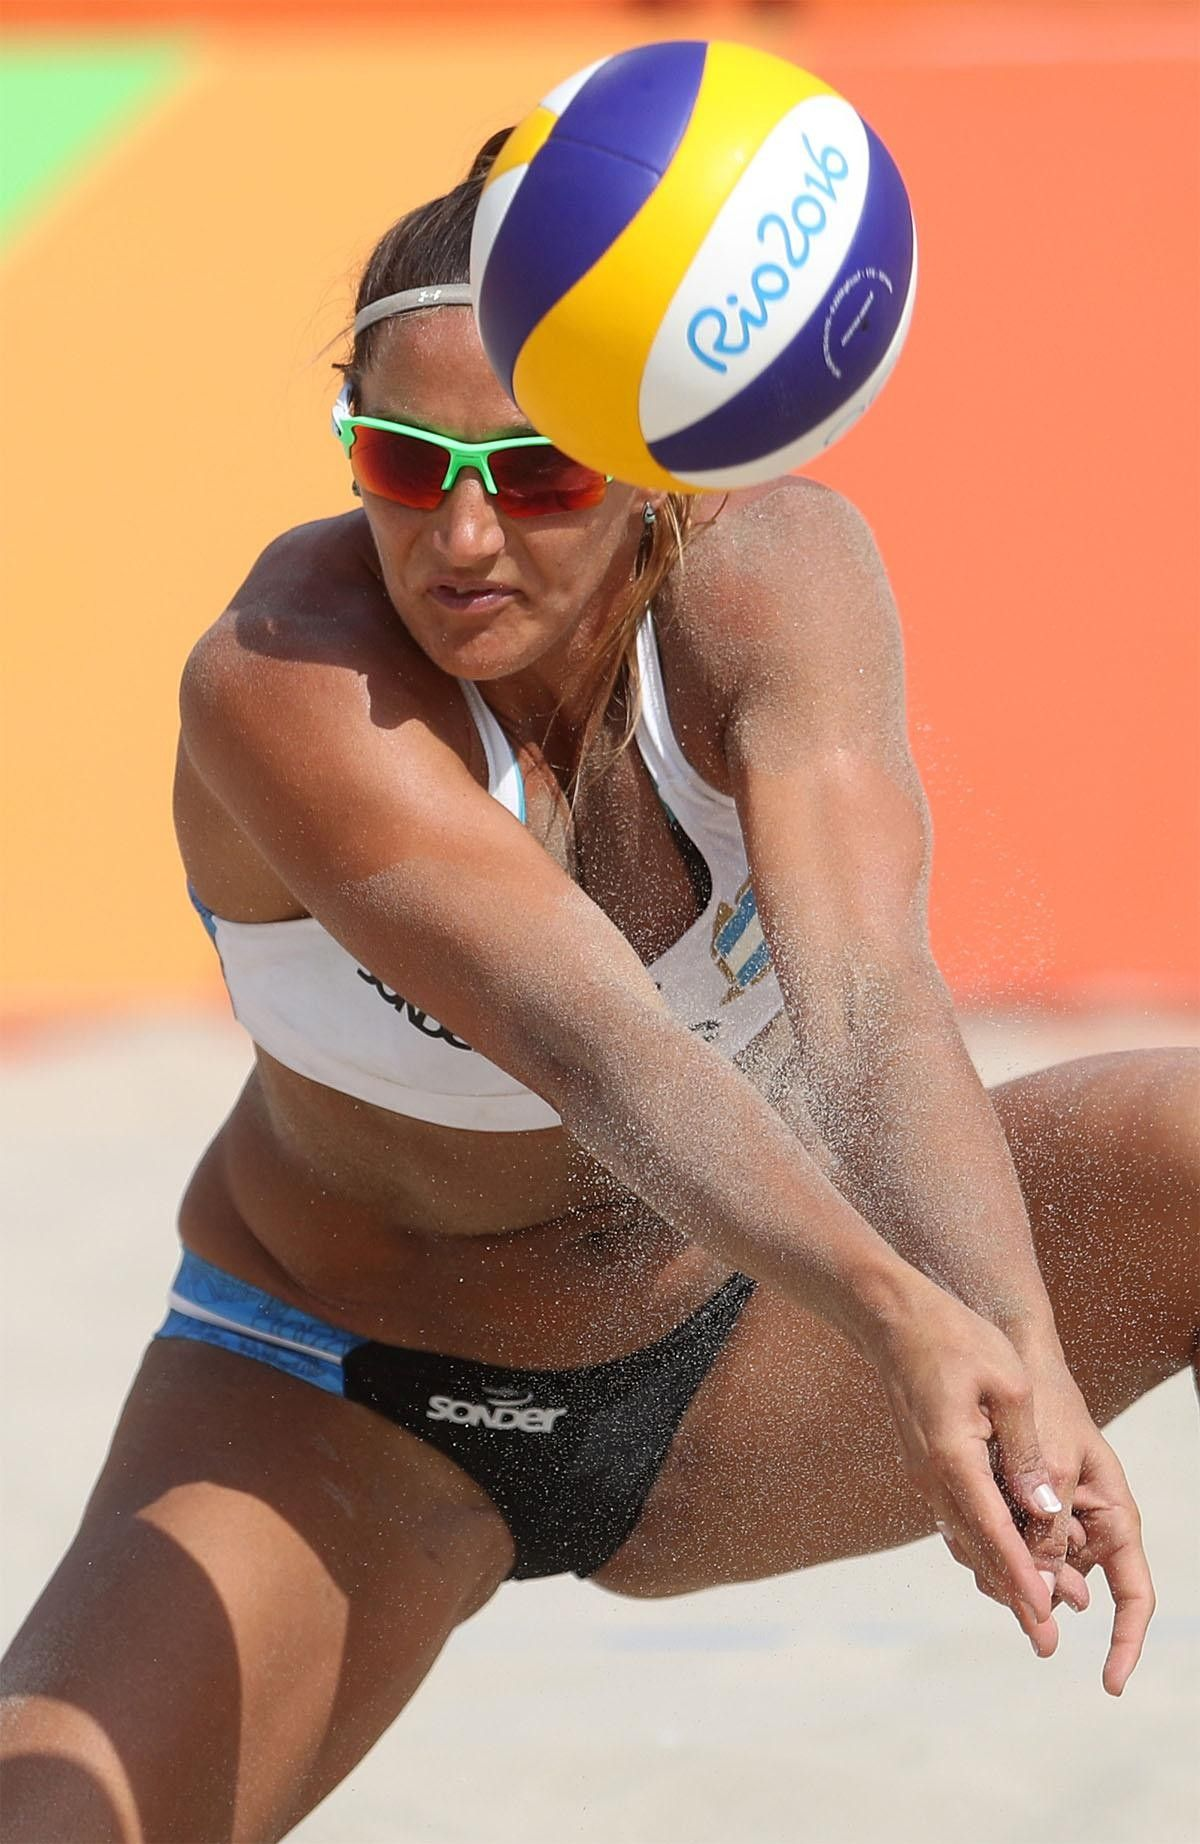 Argentina S Georgina Klug Passes A Ball During A Women S Beach Volleyball Match Beach Volleyball Rio Olympics Volleyball